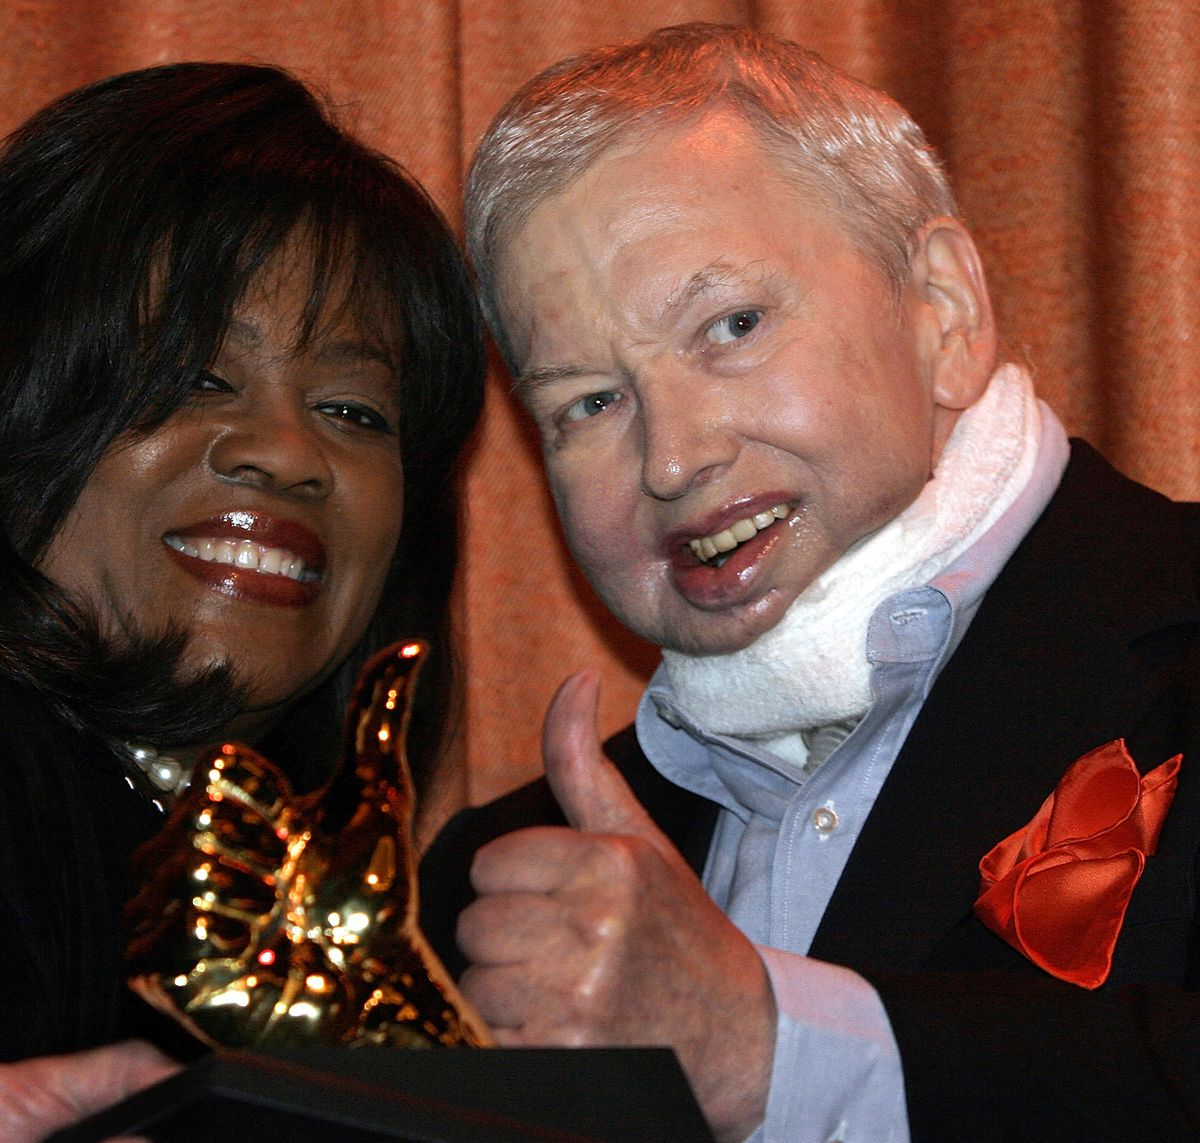 In his first public appearance since undergoing cancer-related surgery, Roger Ebert joins wife Chaz in displaying the Golden Thumb Award at his annual Overlooked Film Festival in 2007. | Seth Perlman/AP